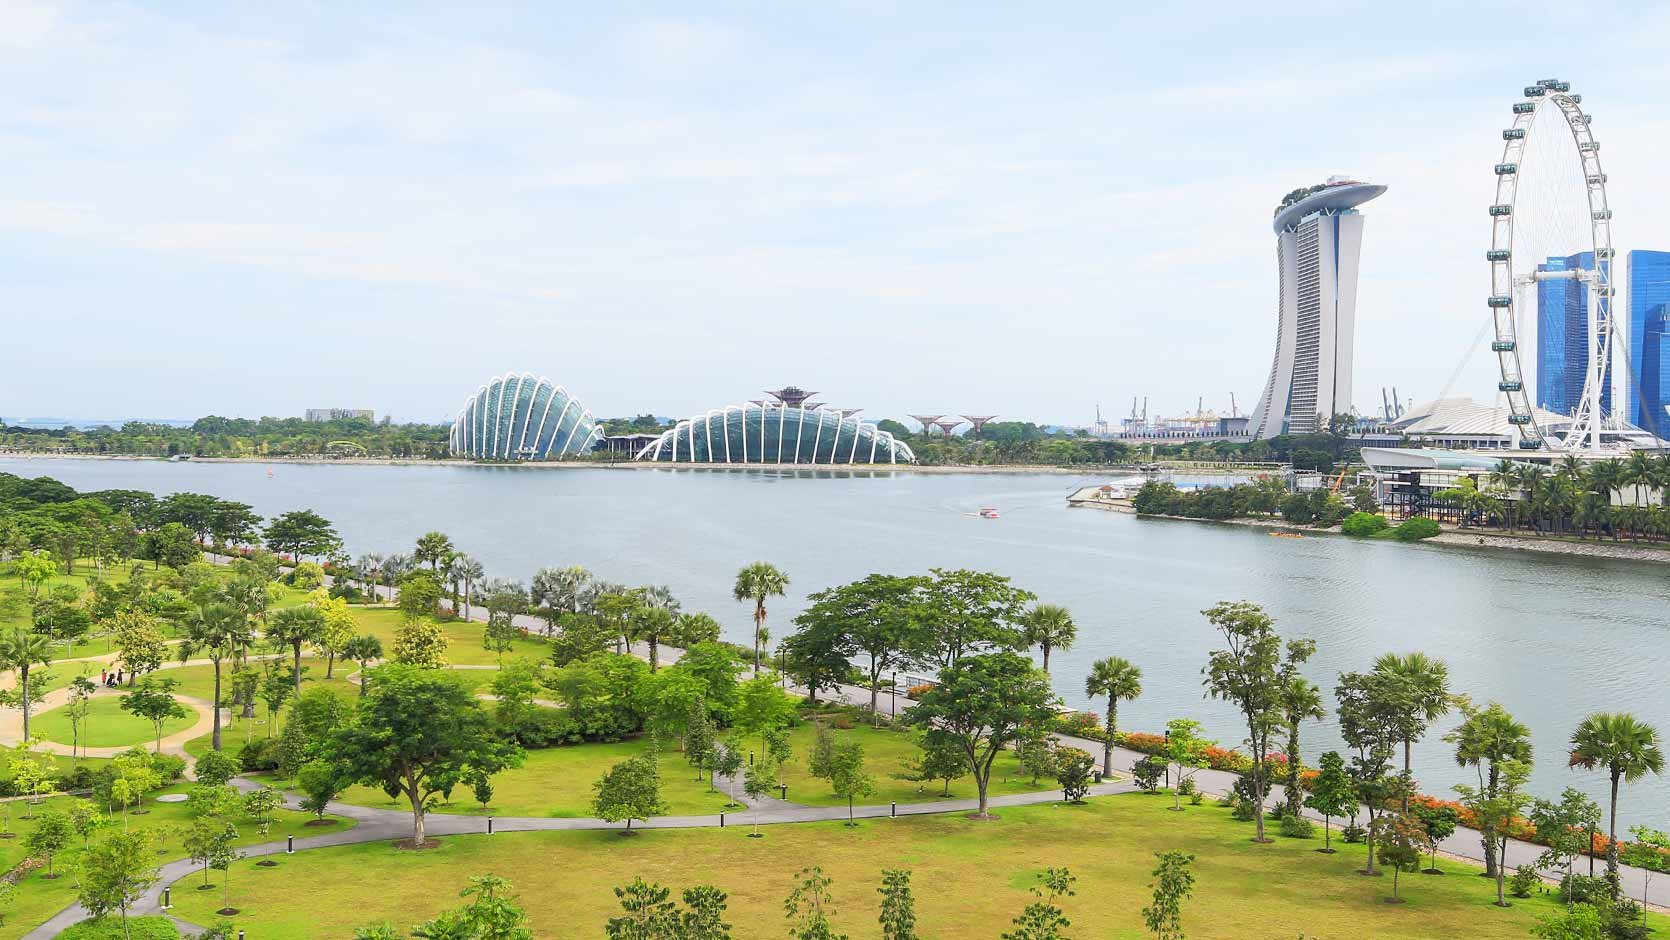 photo courtesy gardens by the bay